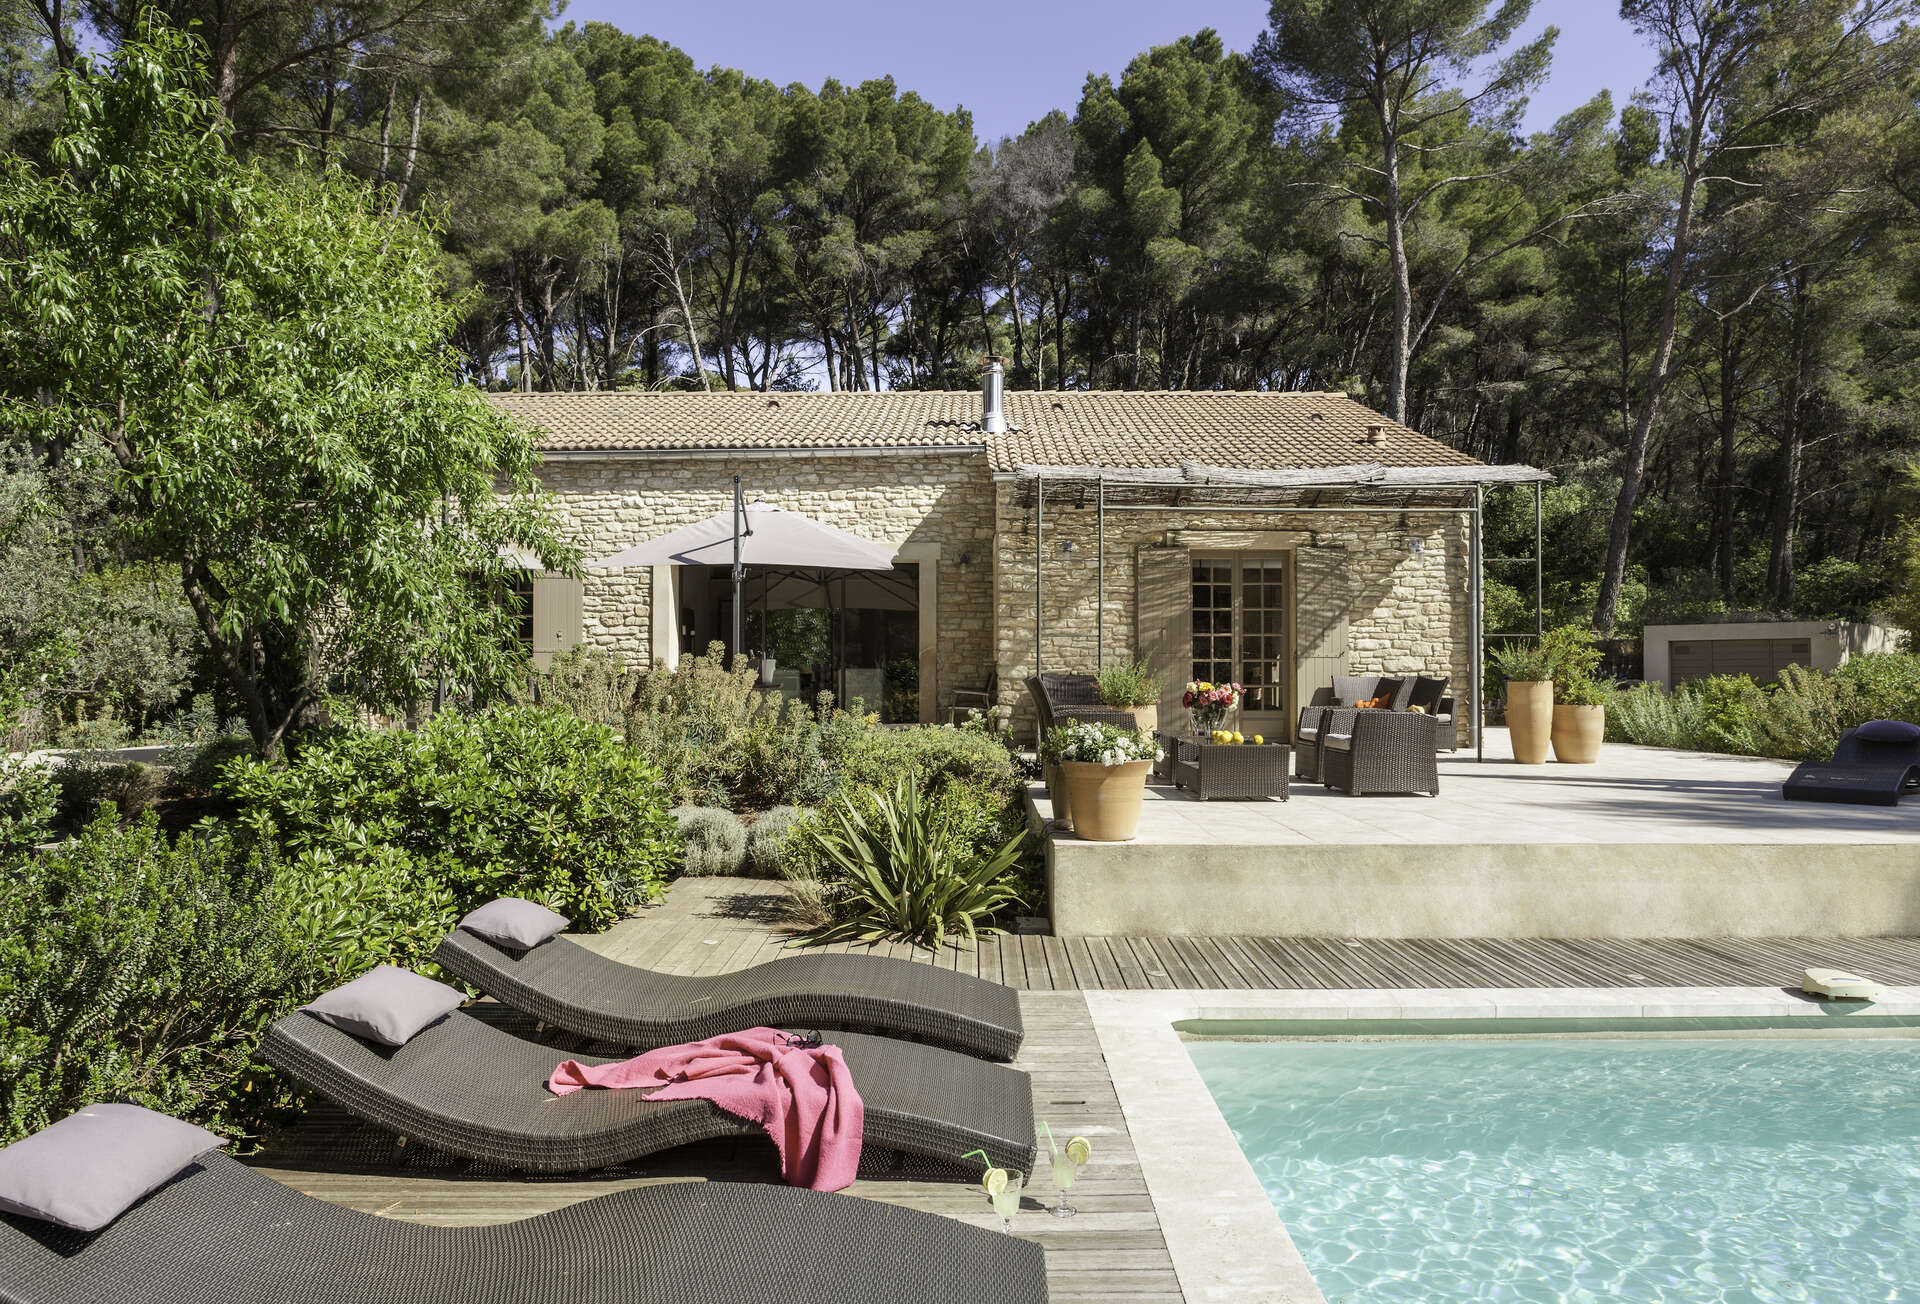 Luxury vacation rentals europe - France - Provence ih - Pernes lesfontaines - Le Clos a l'Amandier - Image 1/29